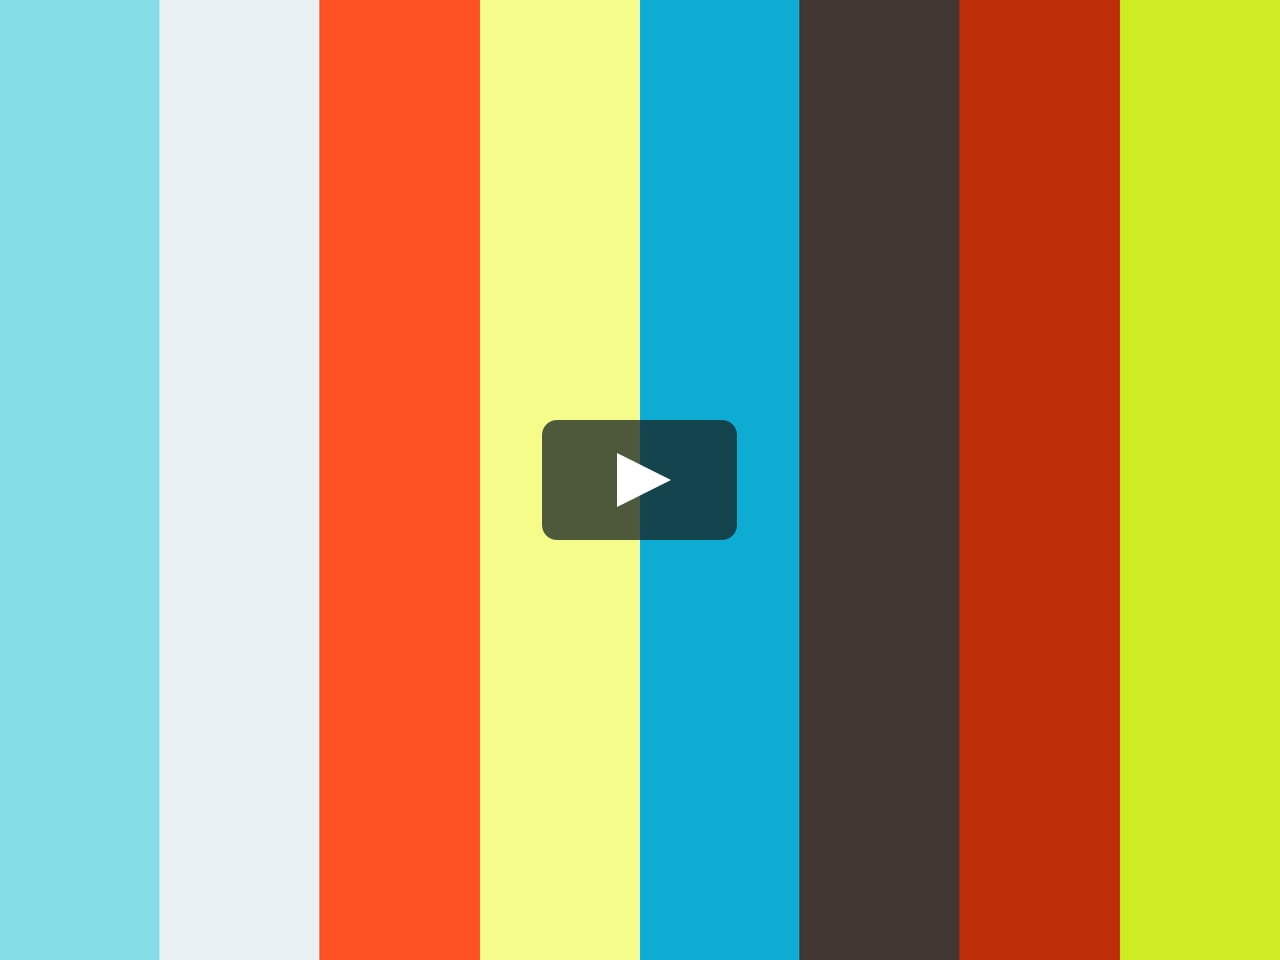 Polari at the Pond on Vimeo